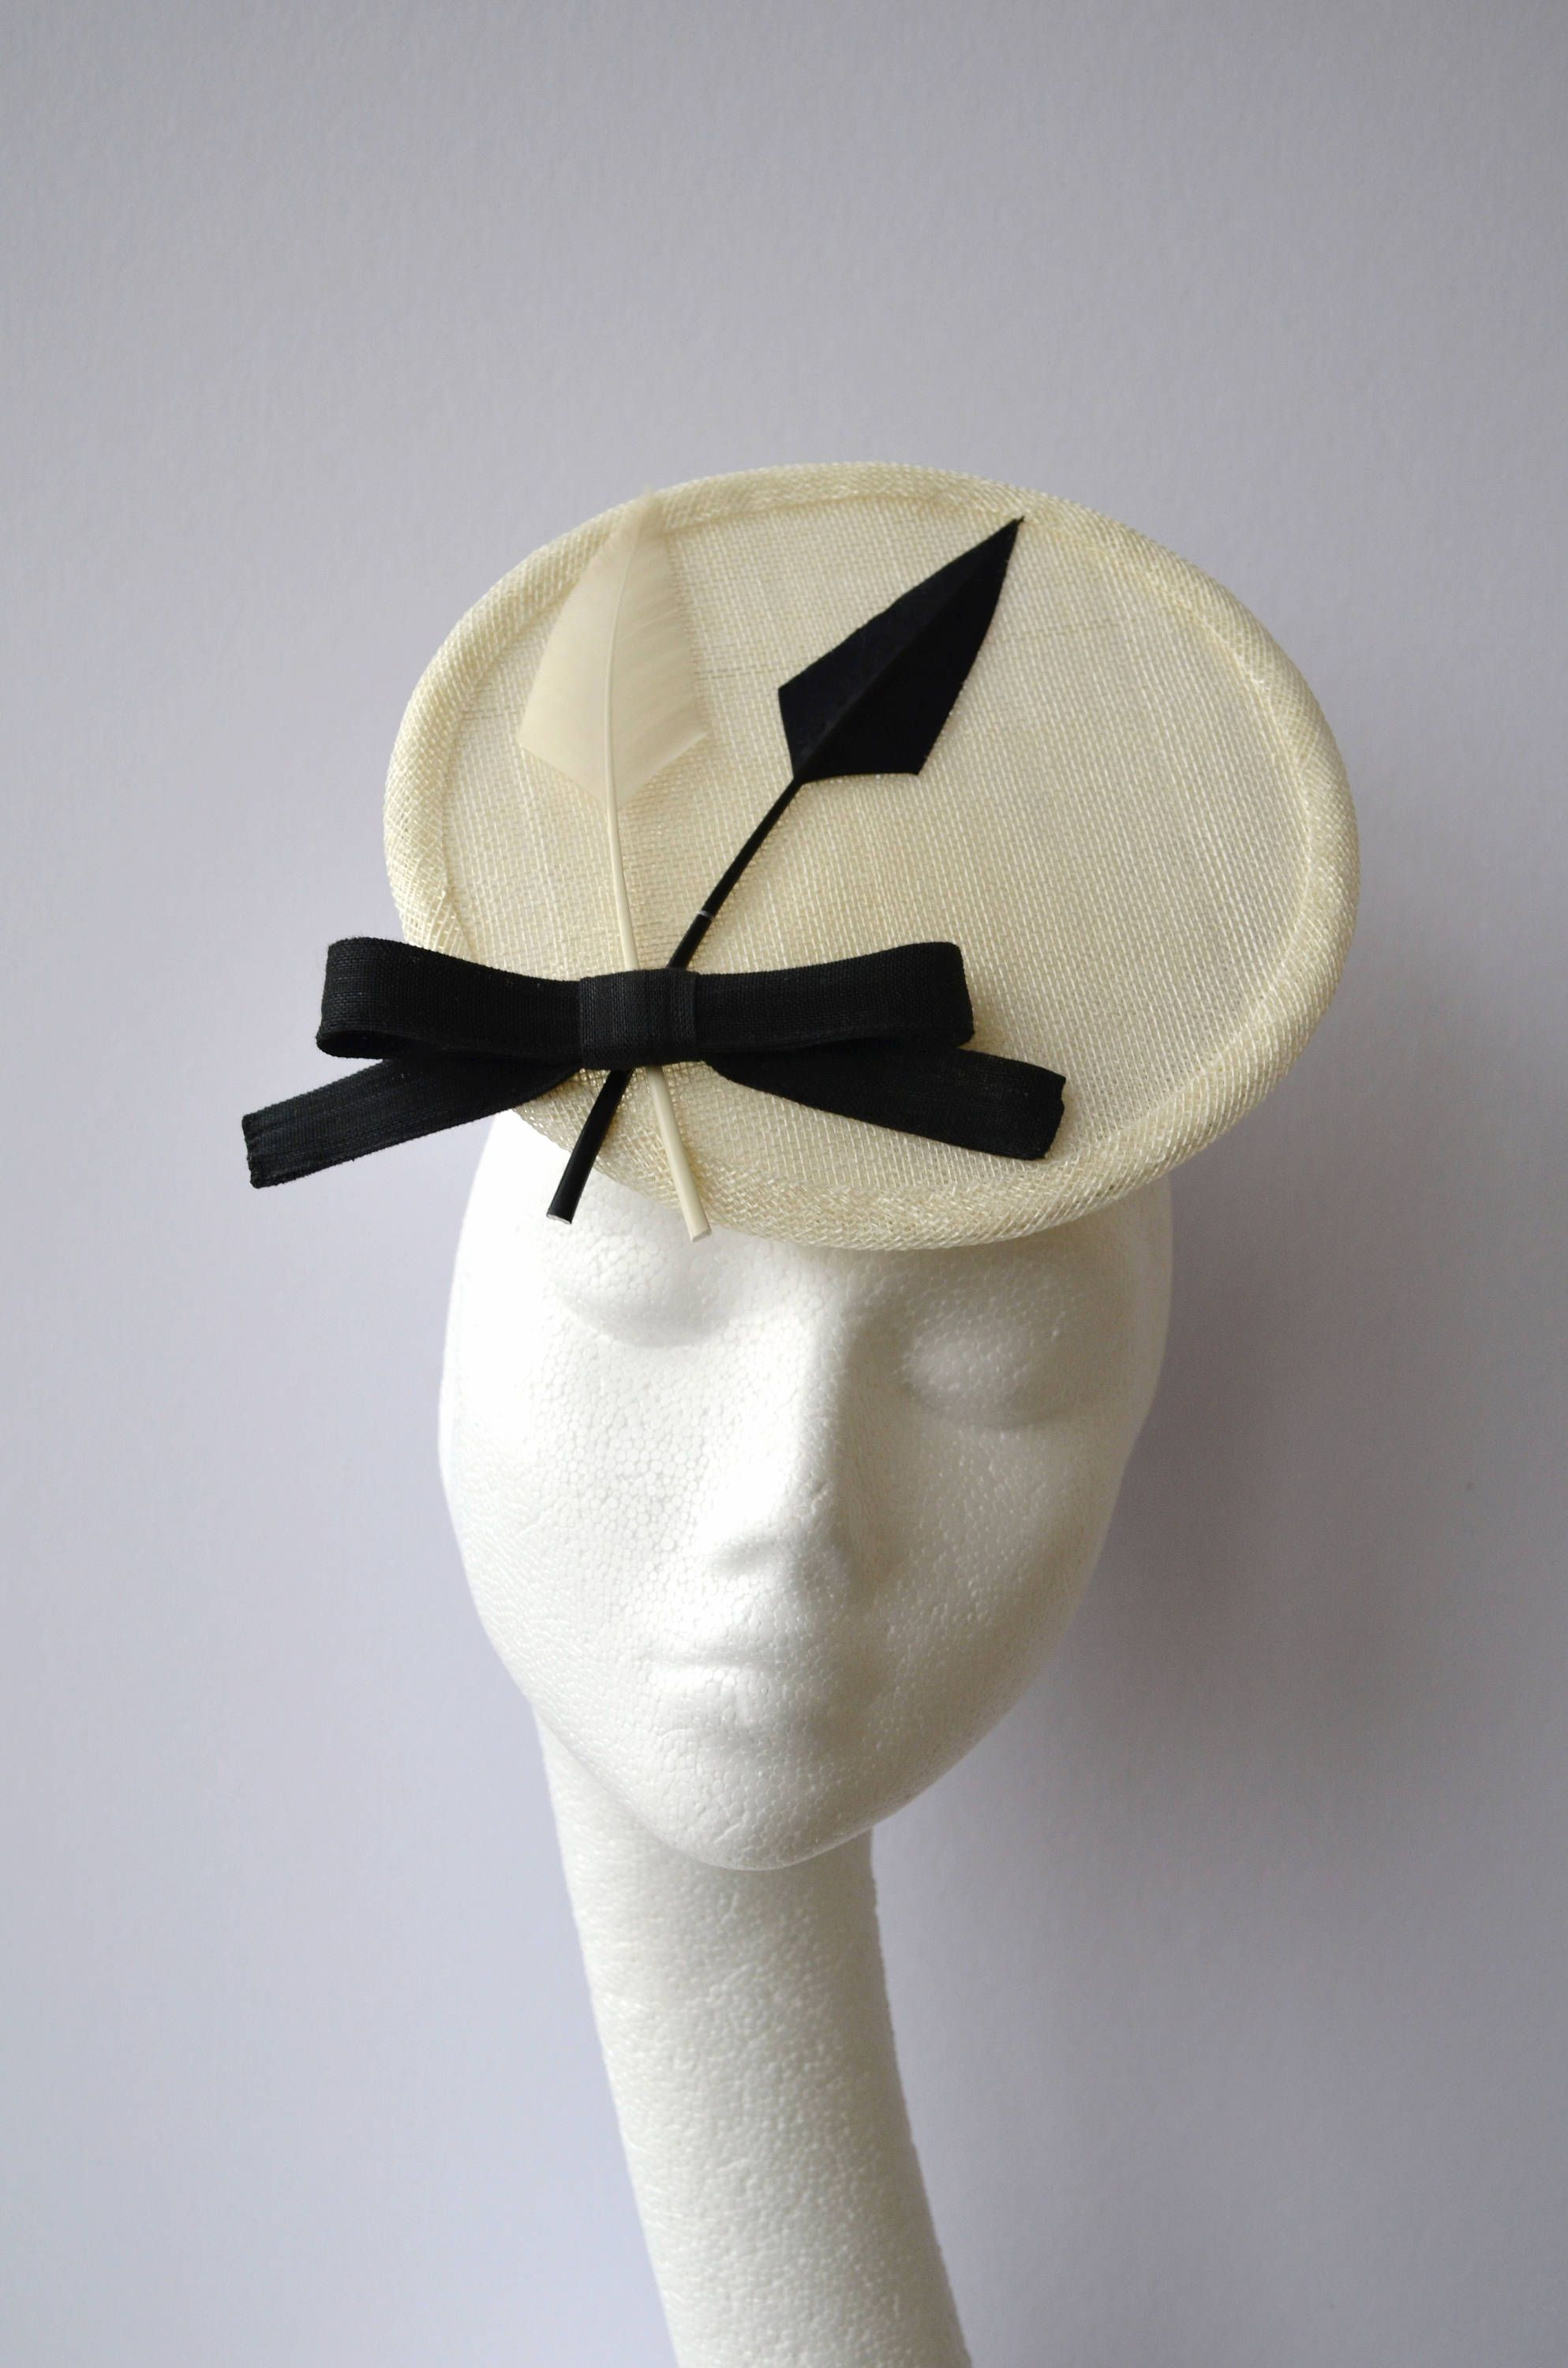 Ivory disc hat. Ivory percher hat. Black and white wedding hat. Ivory  fascinator. Mother of bride hat. Saucer hat. Small disc hat. by  jaracedesigns on Etsy 0989555d702